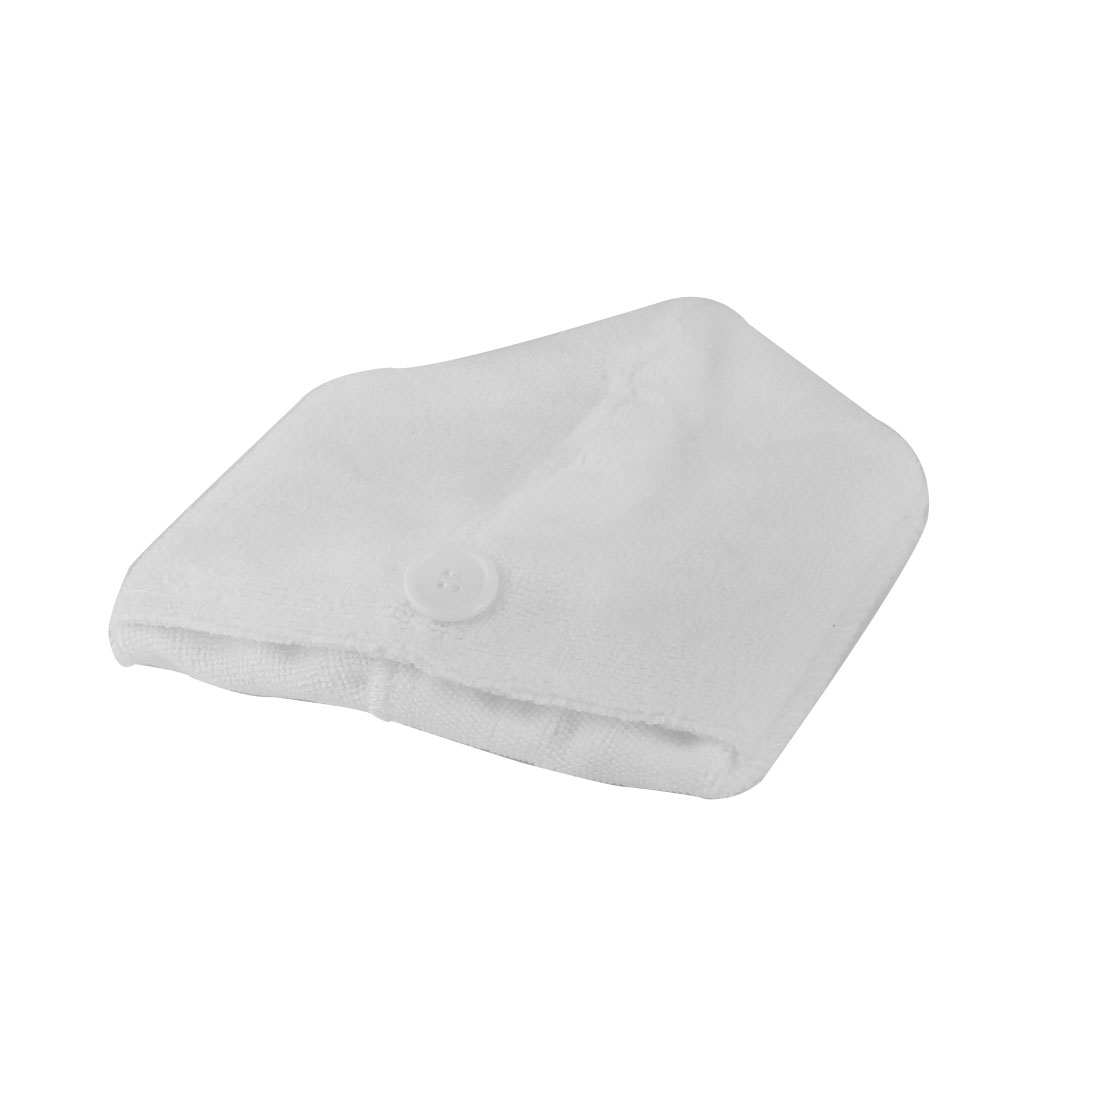 Lady Microfiber Triangle Shower Bathing Bath Hair Drying Dry Cap Hat Towel White